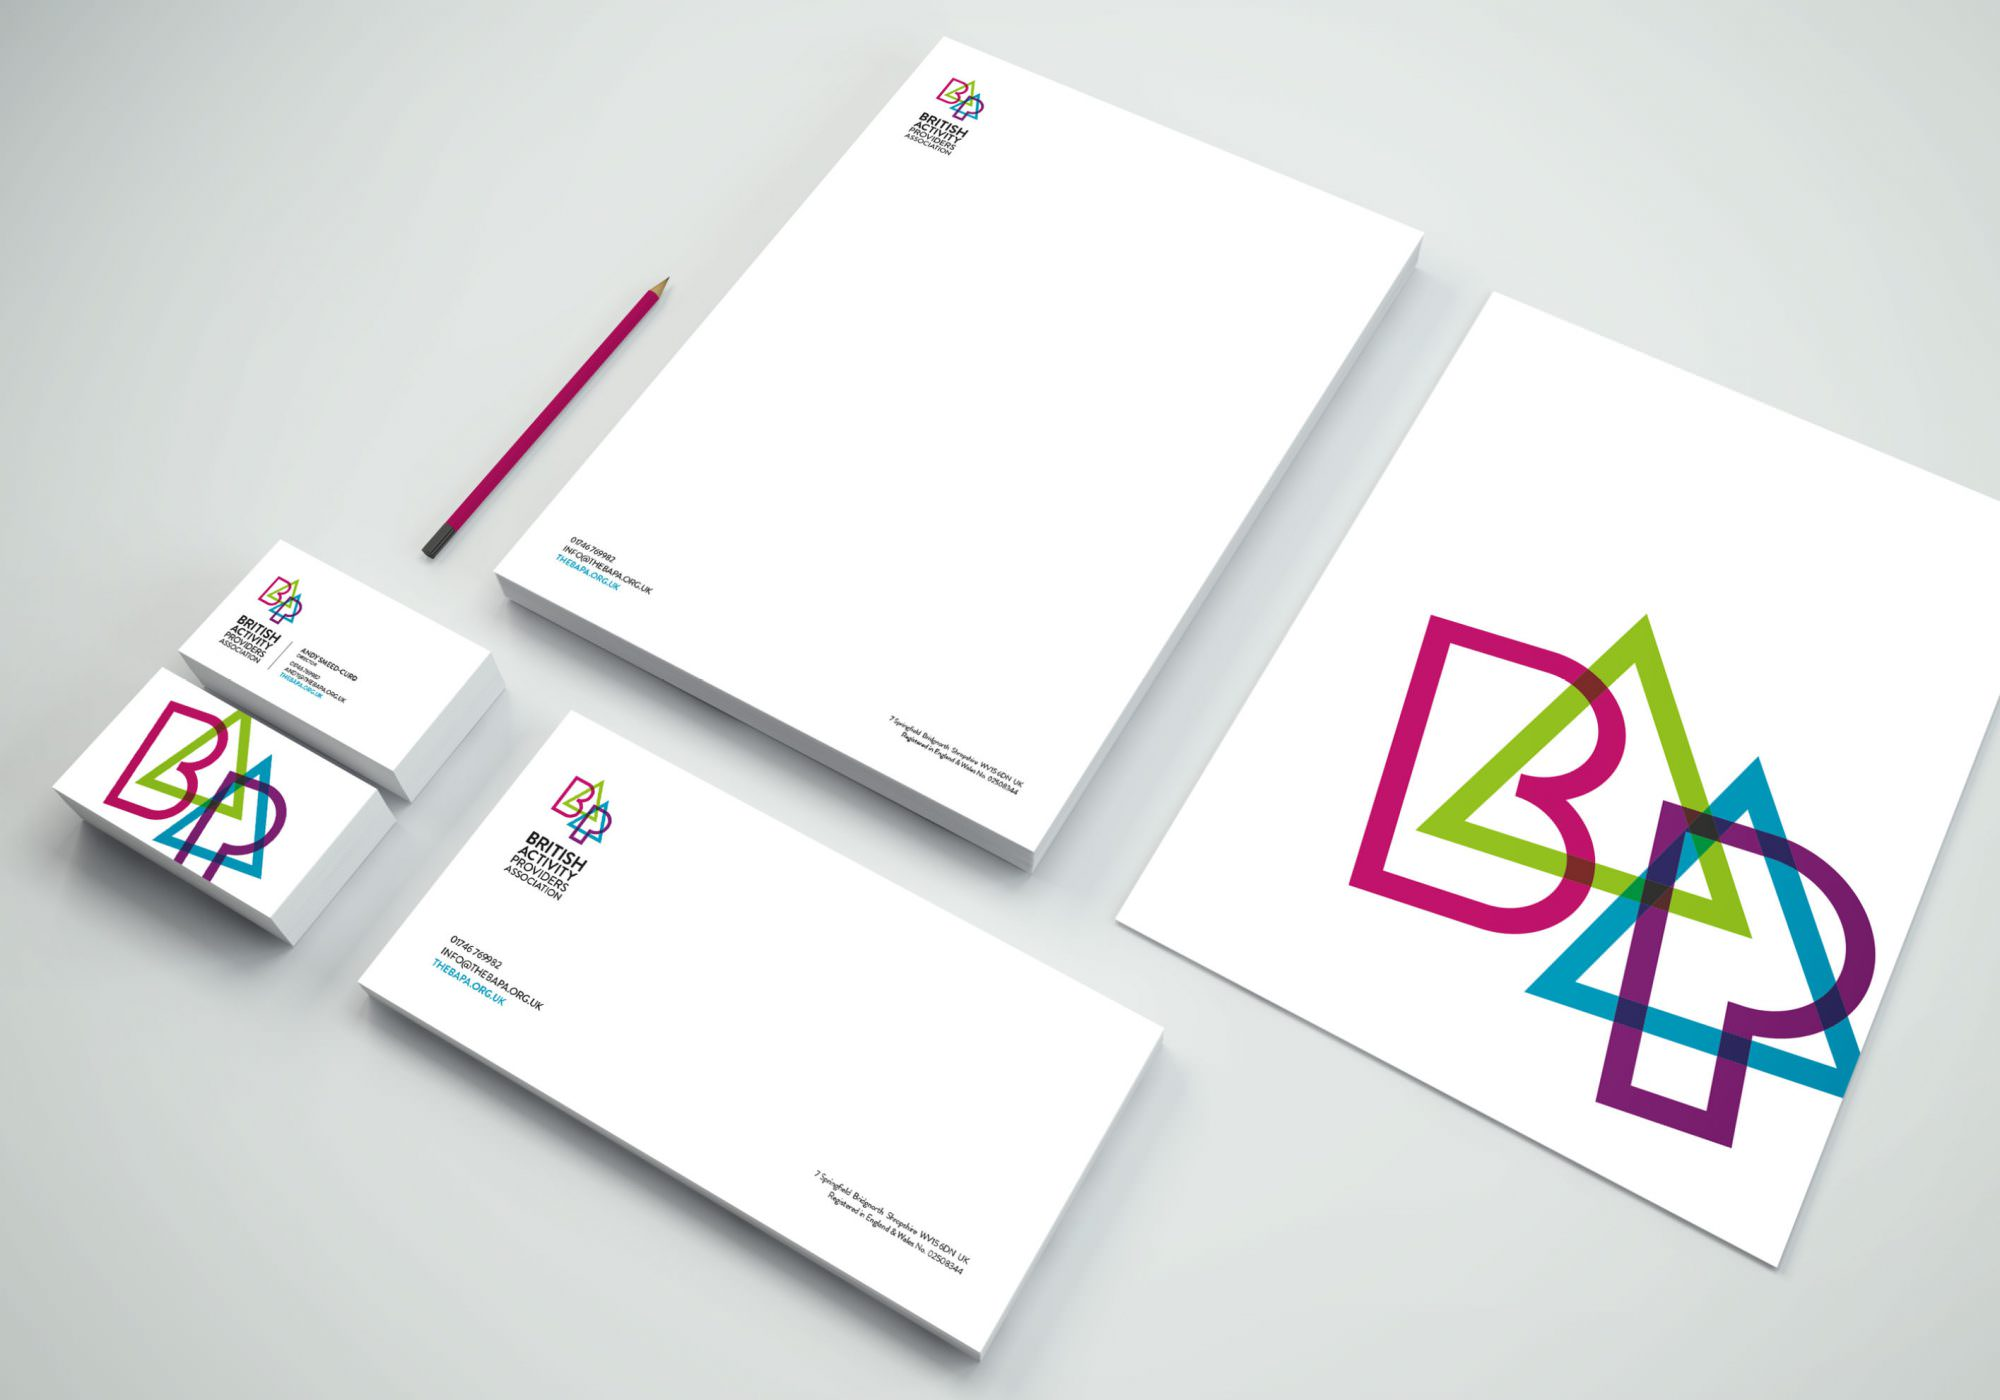 BAPA - Branding, Web Design & Stationery By Source In Shropshire